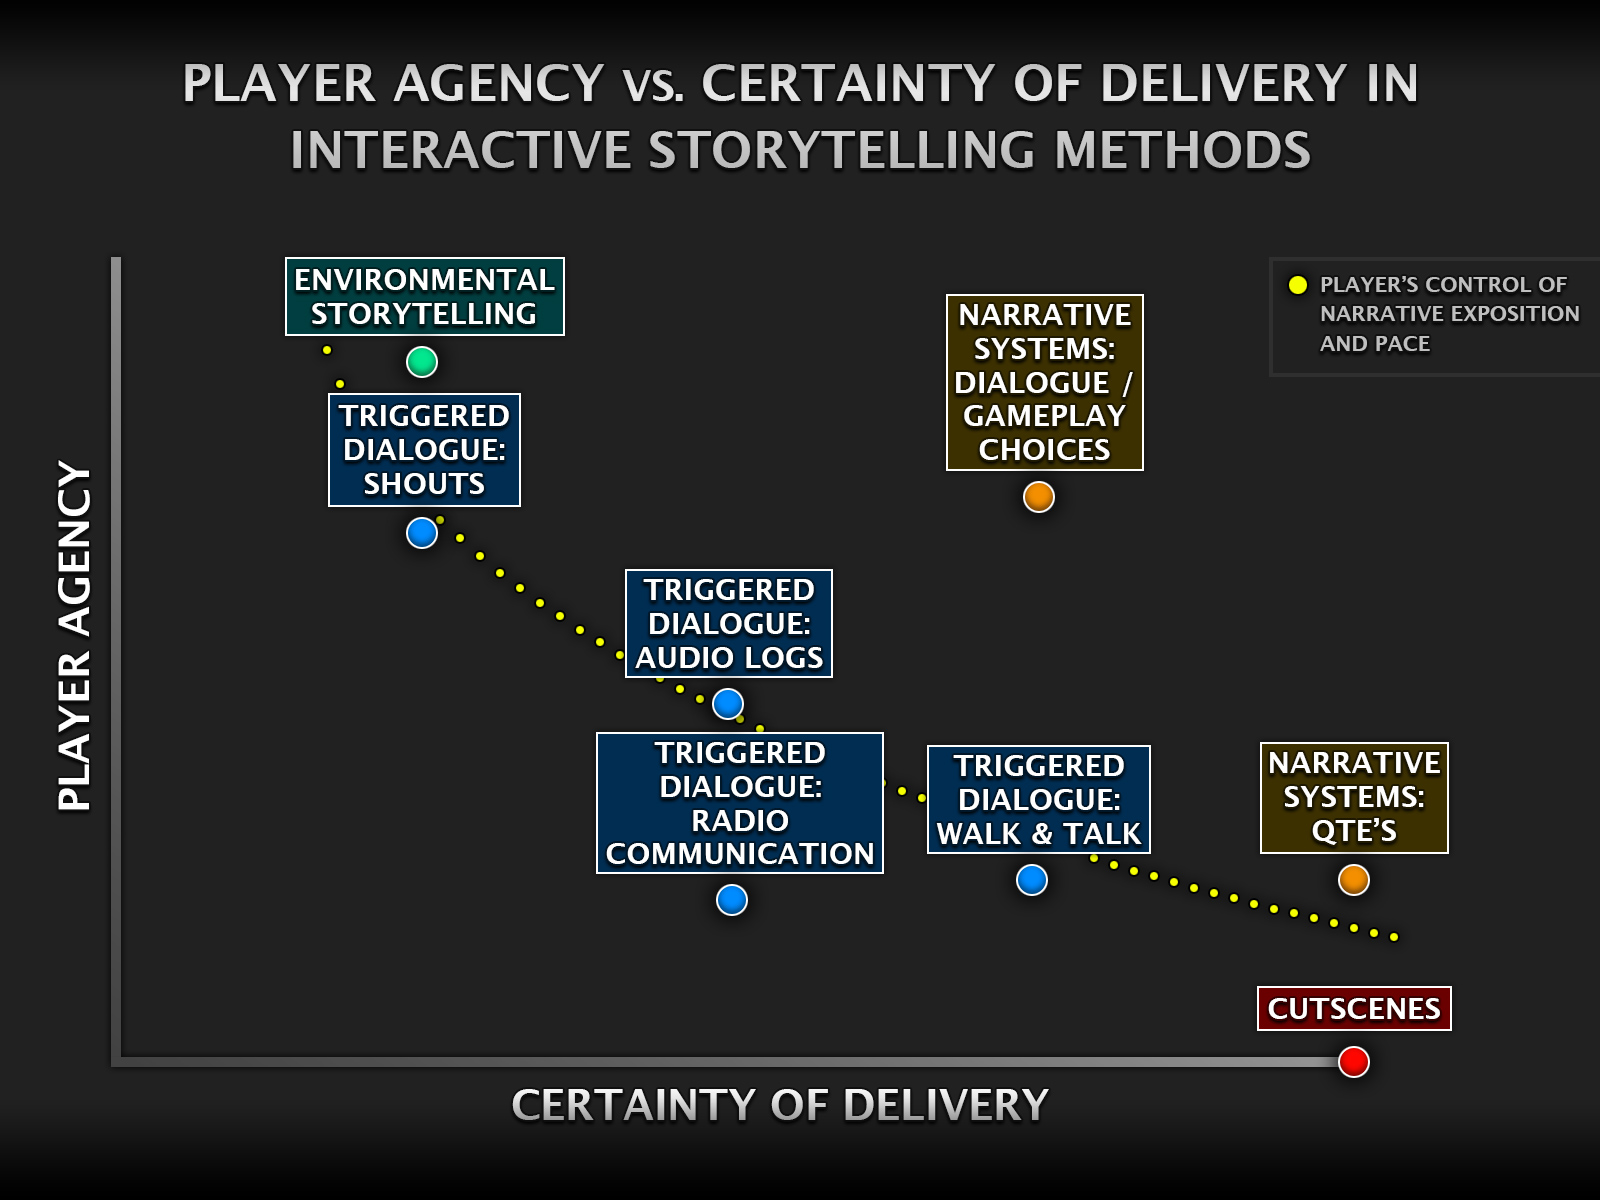 Player-Agency-vs-Certainty.jpg